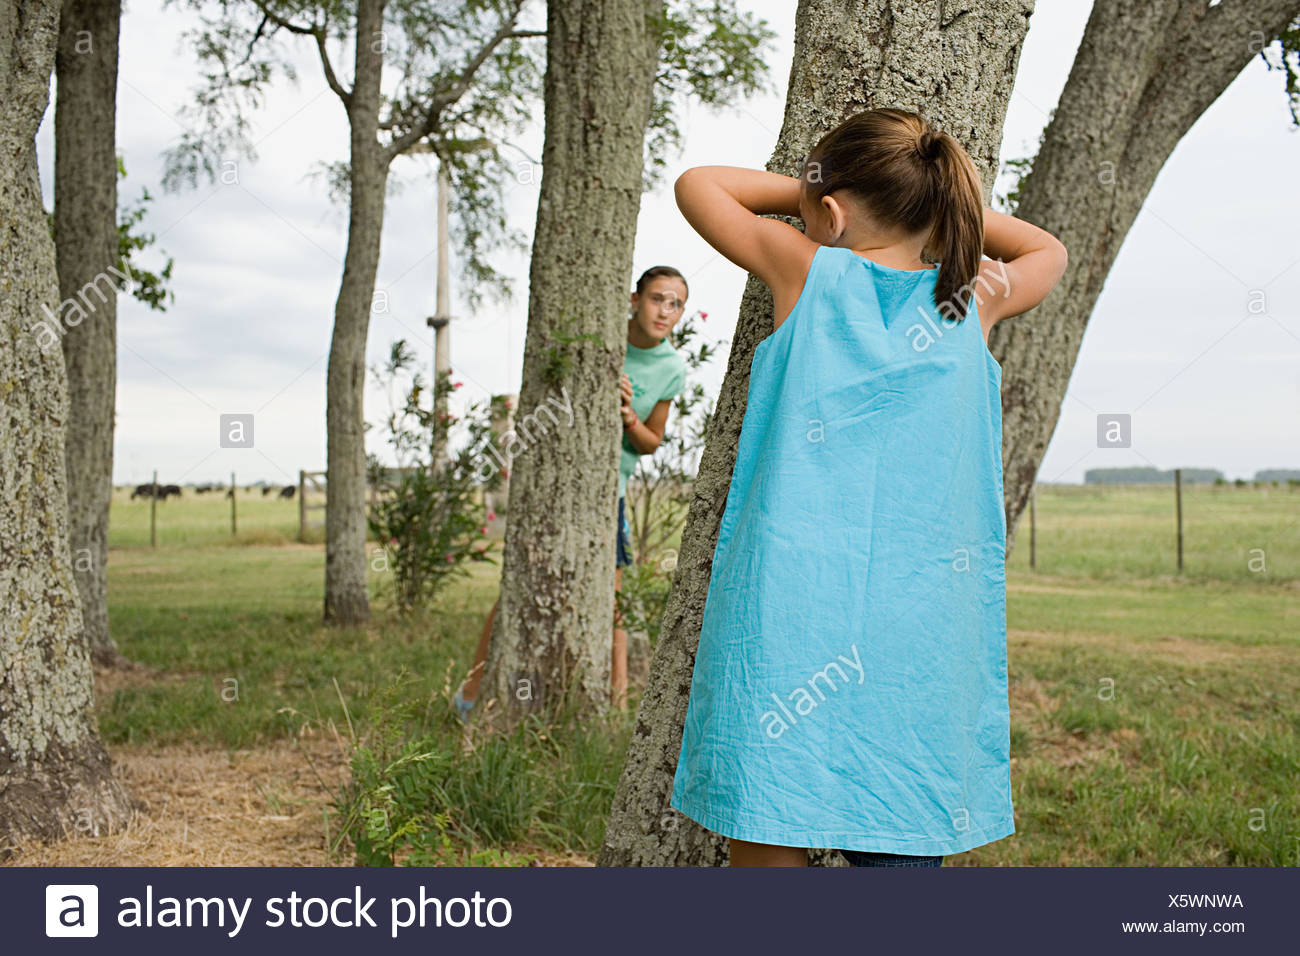 Girls playing hide and seek - Stock Image